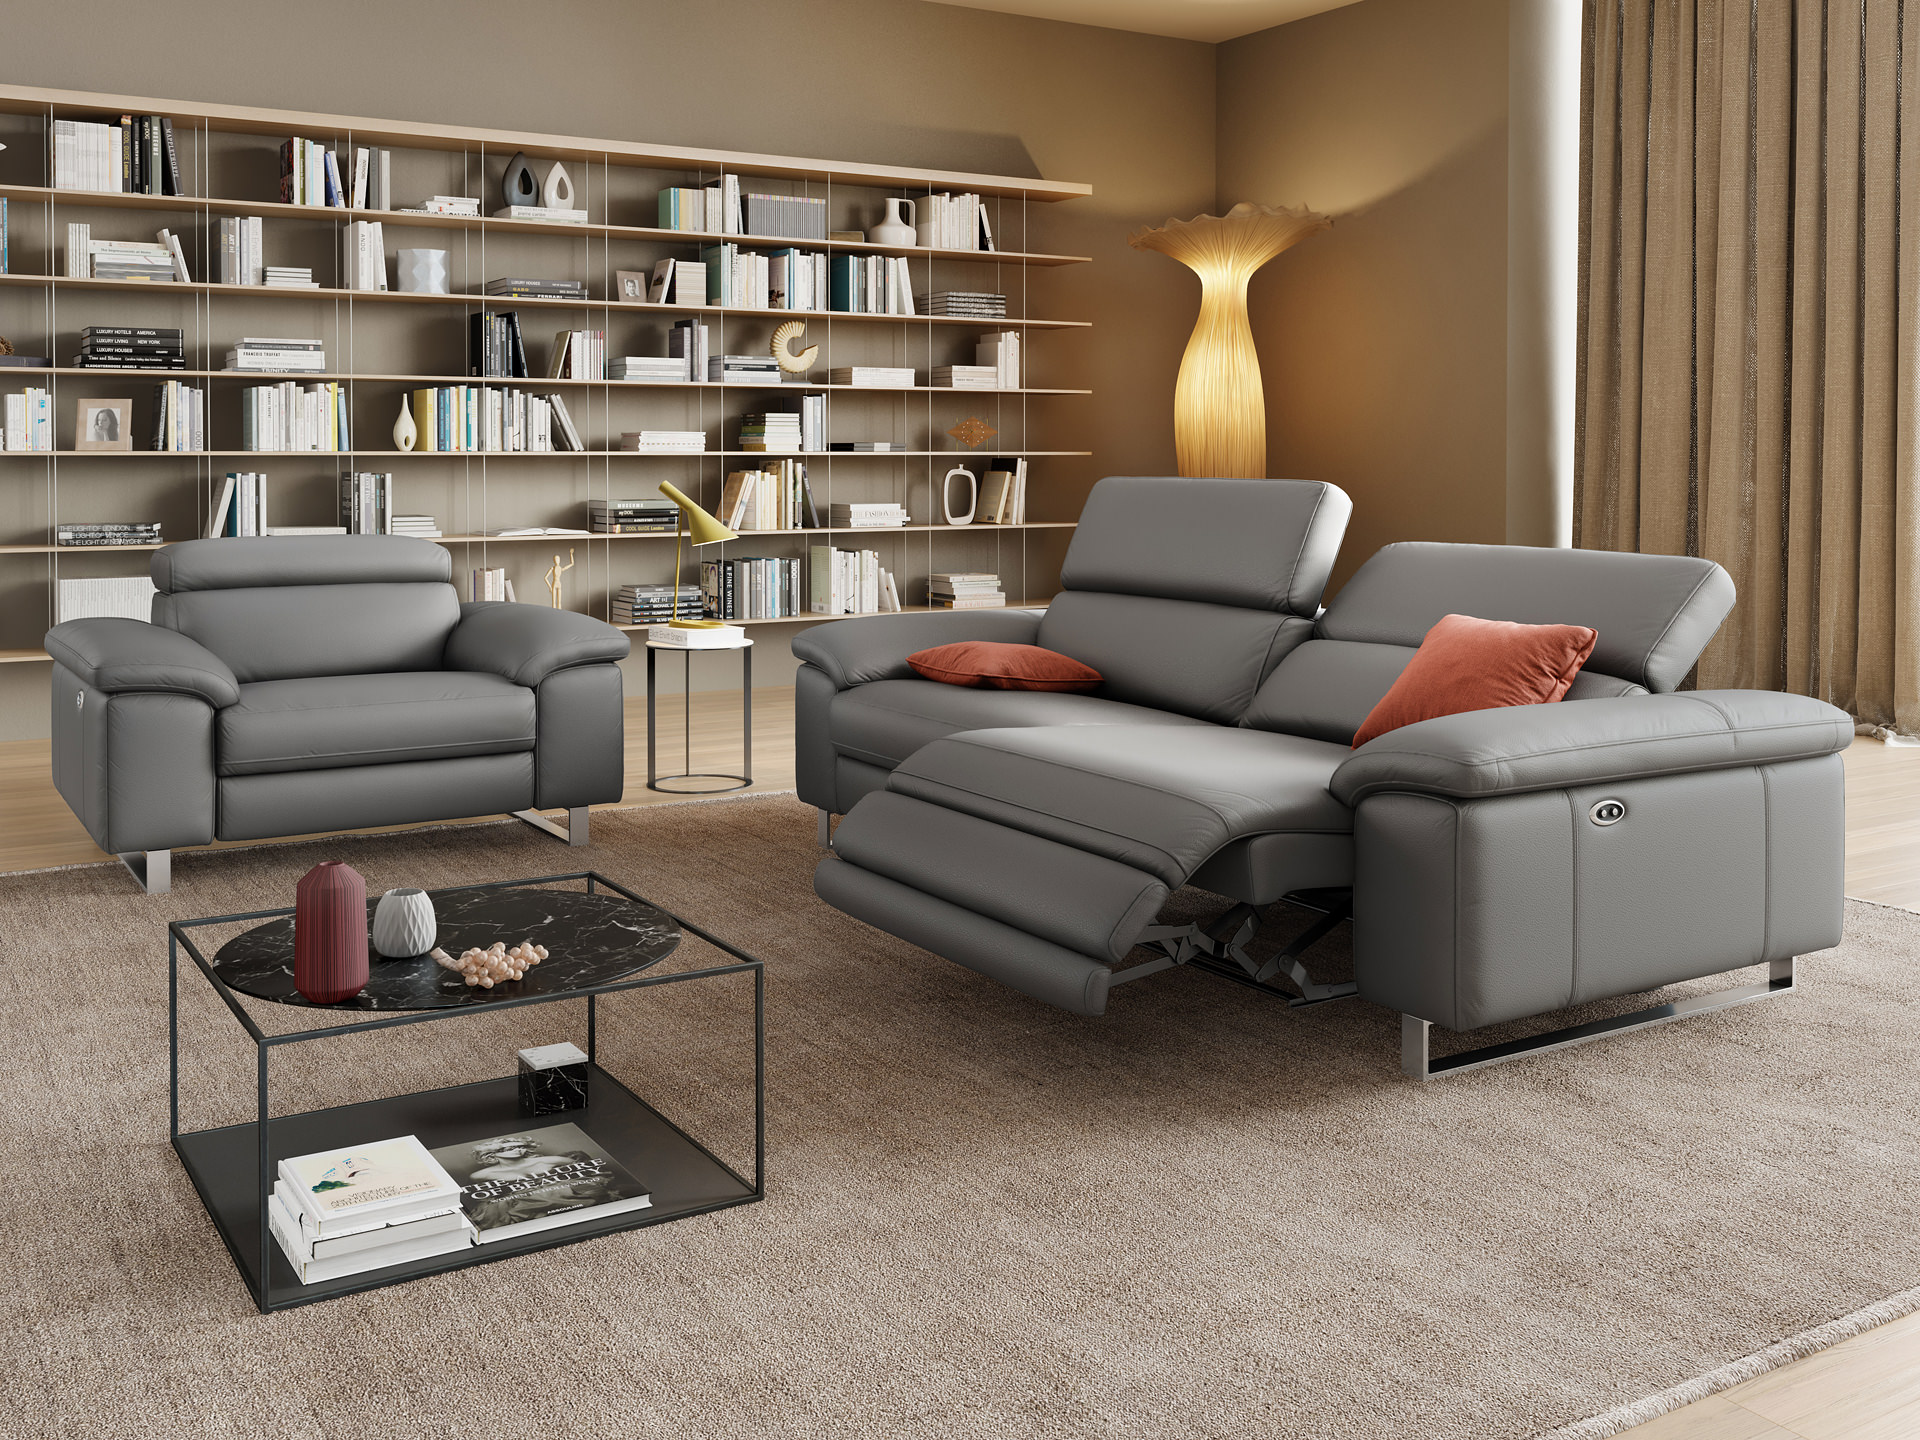 sofa livingroom final architettura e interior design il portale italiano. Black Bedroom Furniture Sets. Home Design Ideas